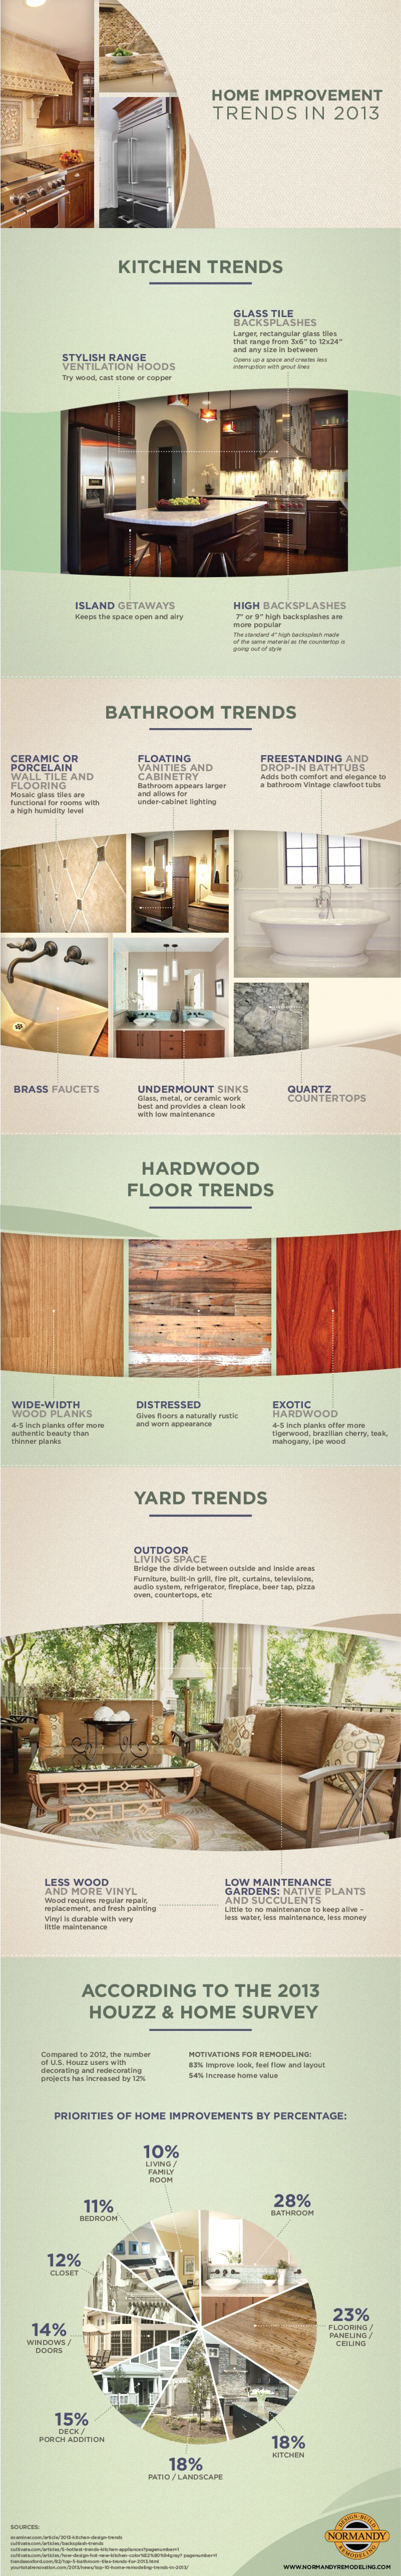 Home Improvements Trends In 2013 Infographic